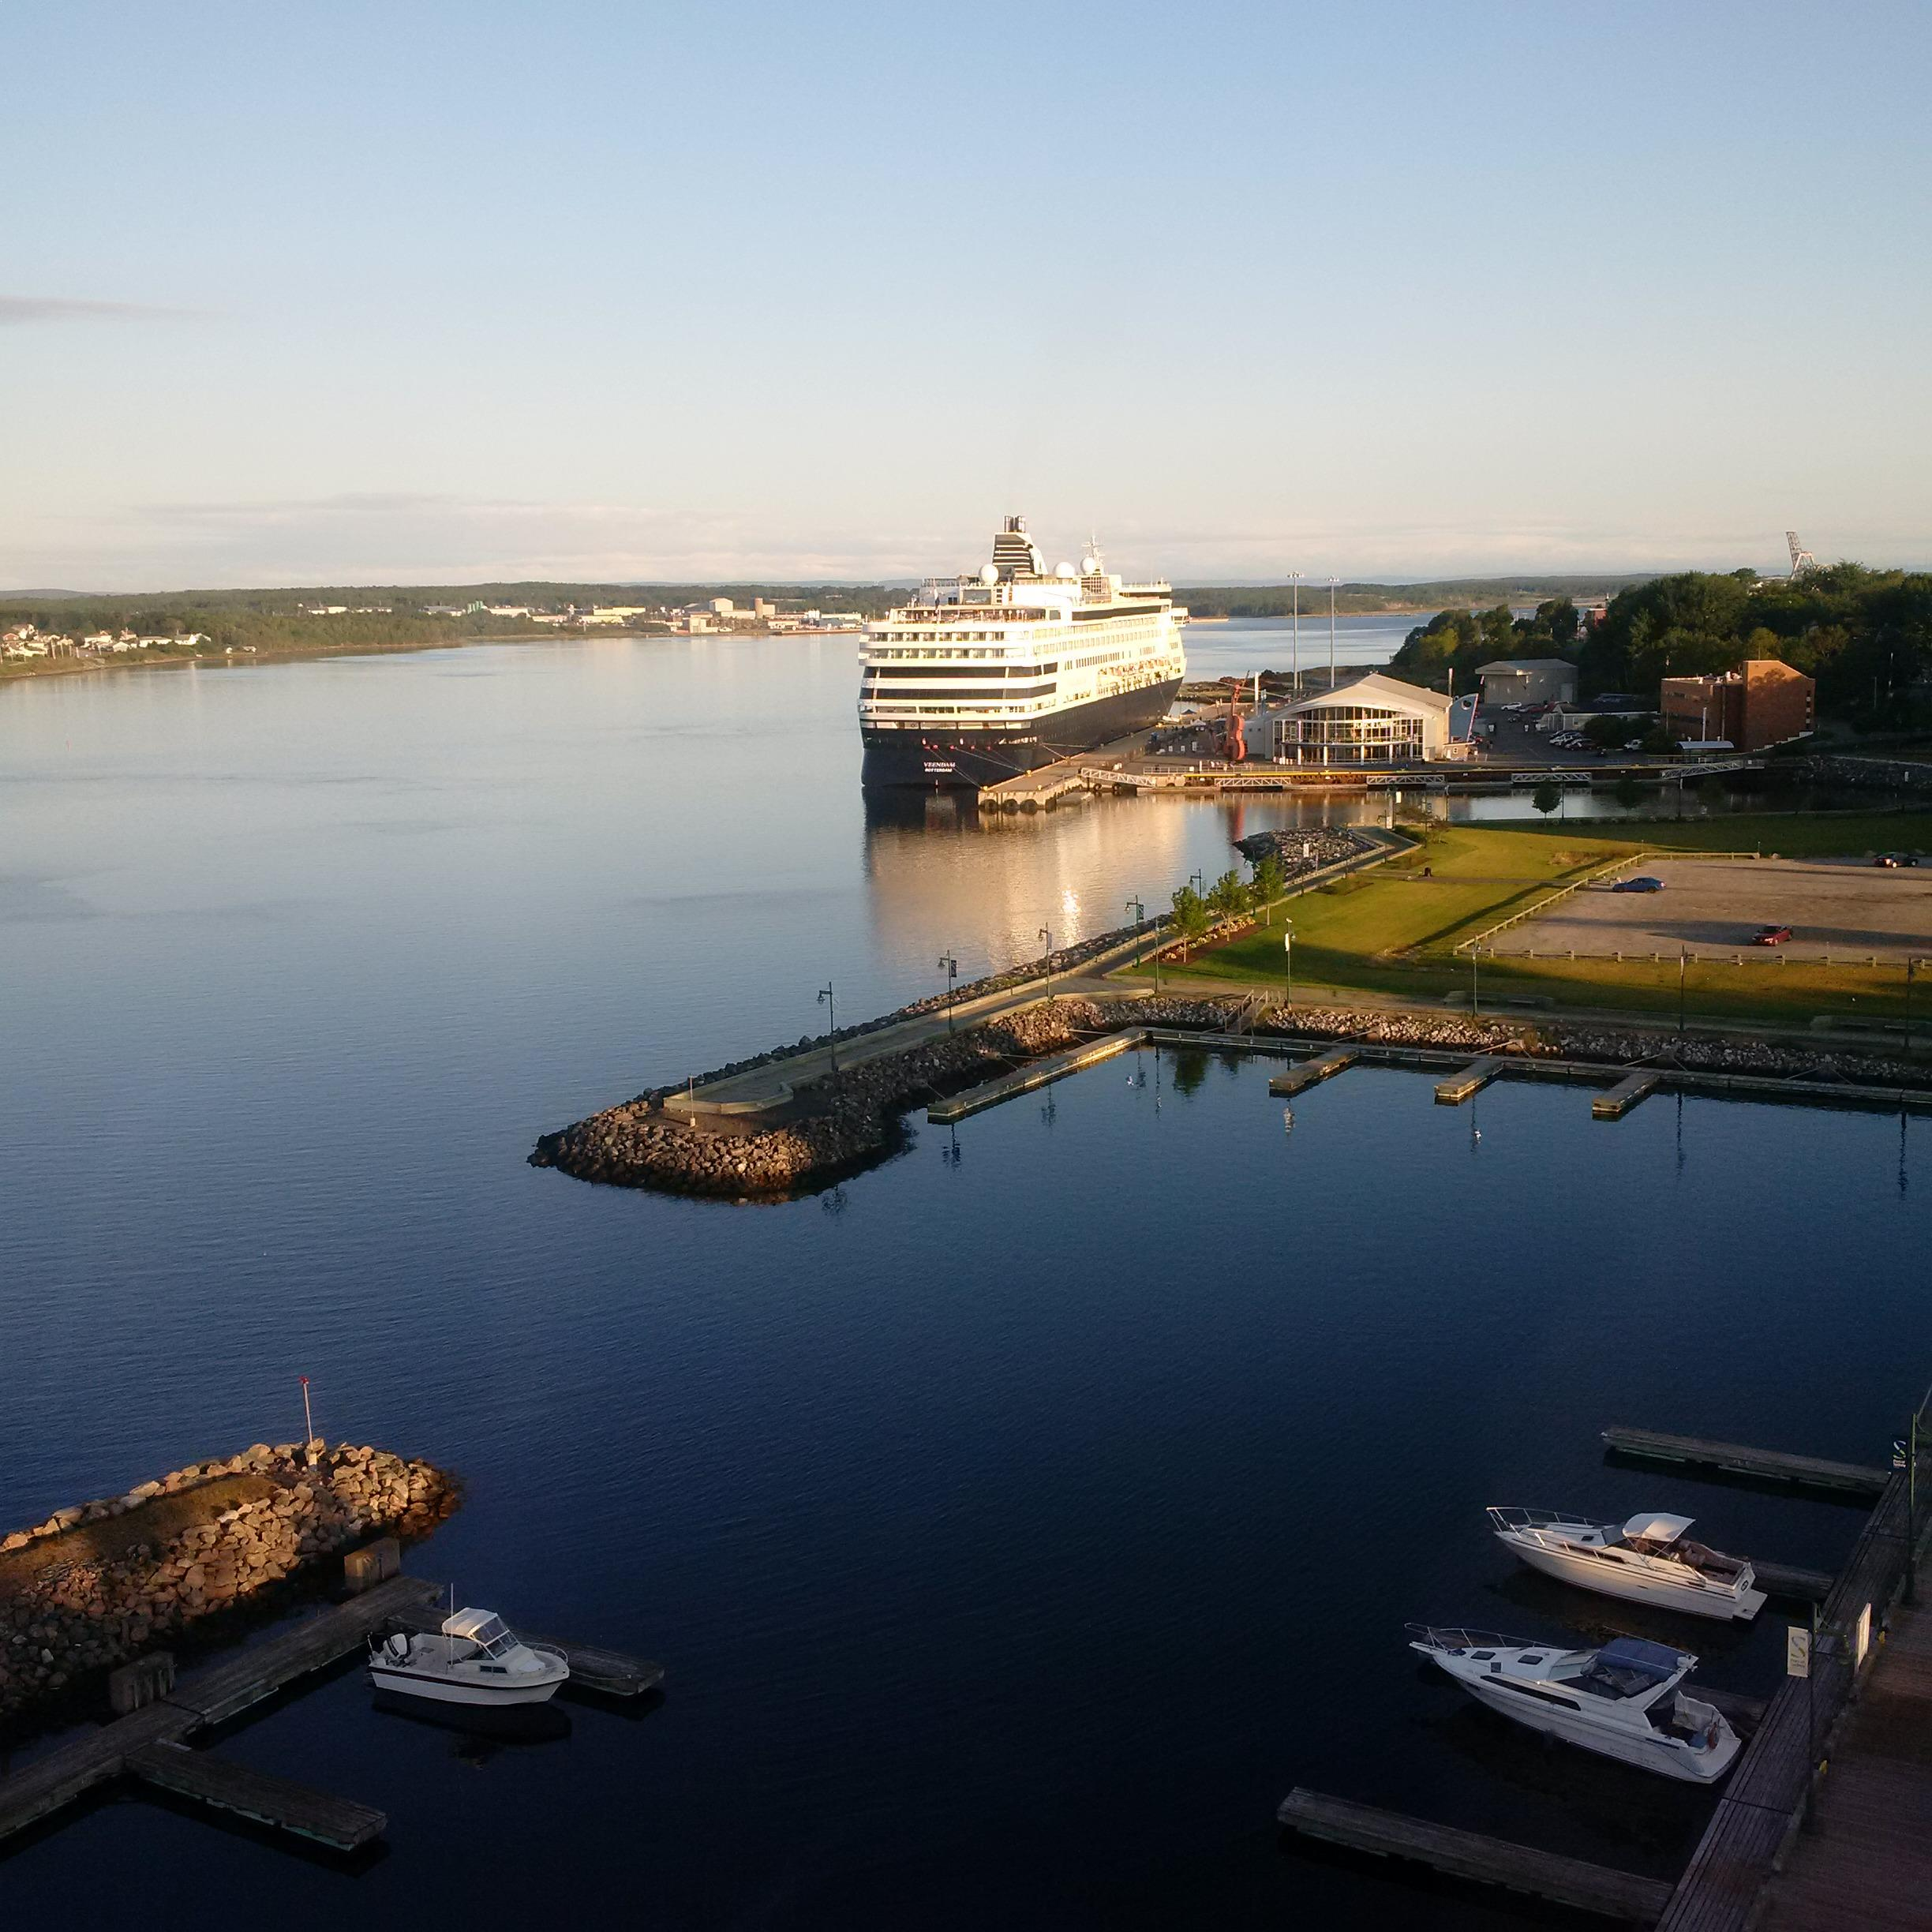 A large ship and smaller boats docked at port representing economic opportunities for Cape Breton